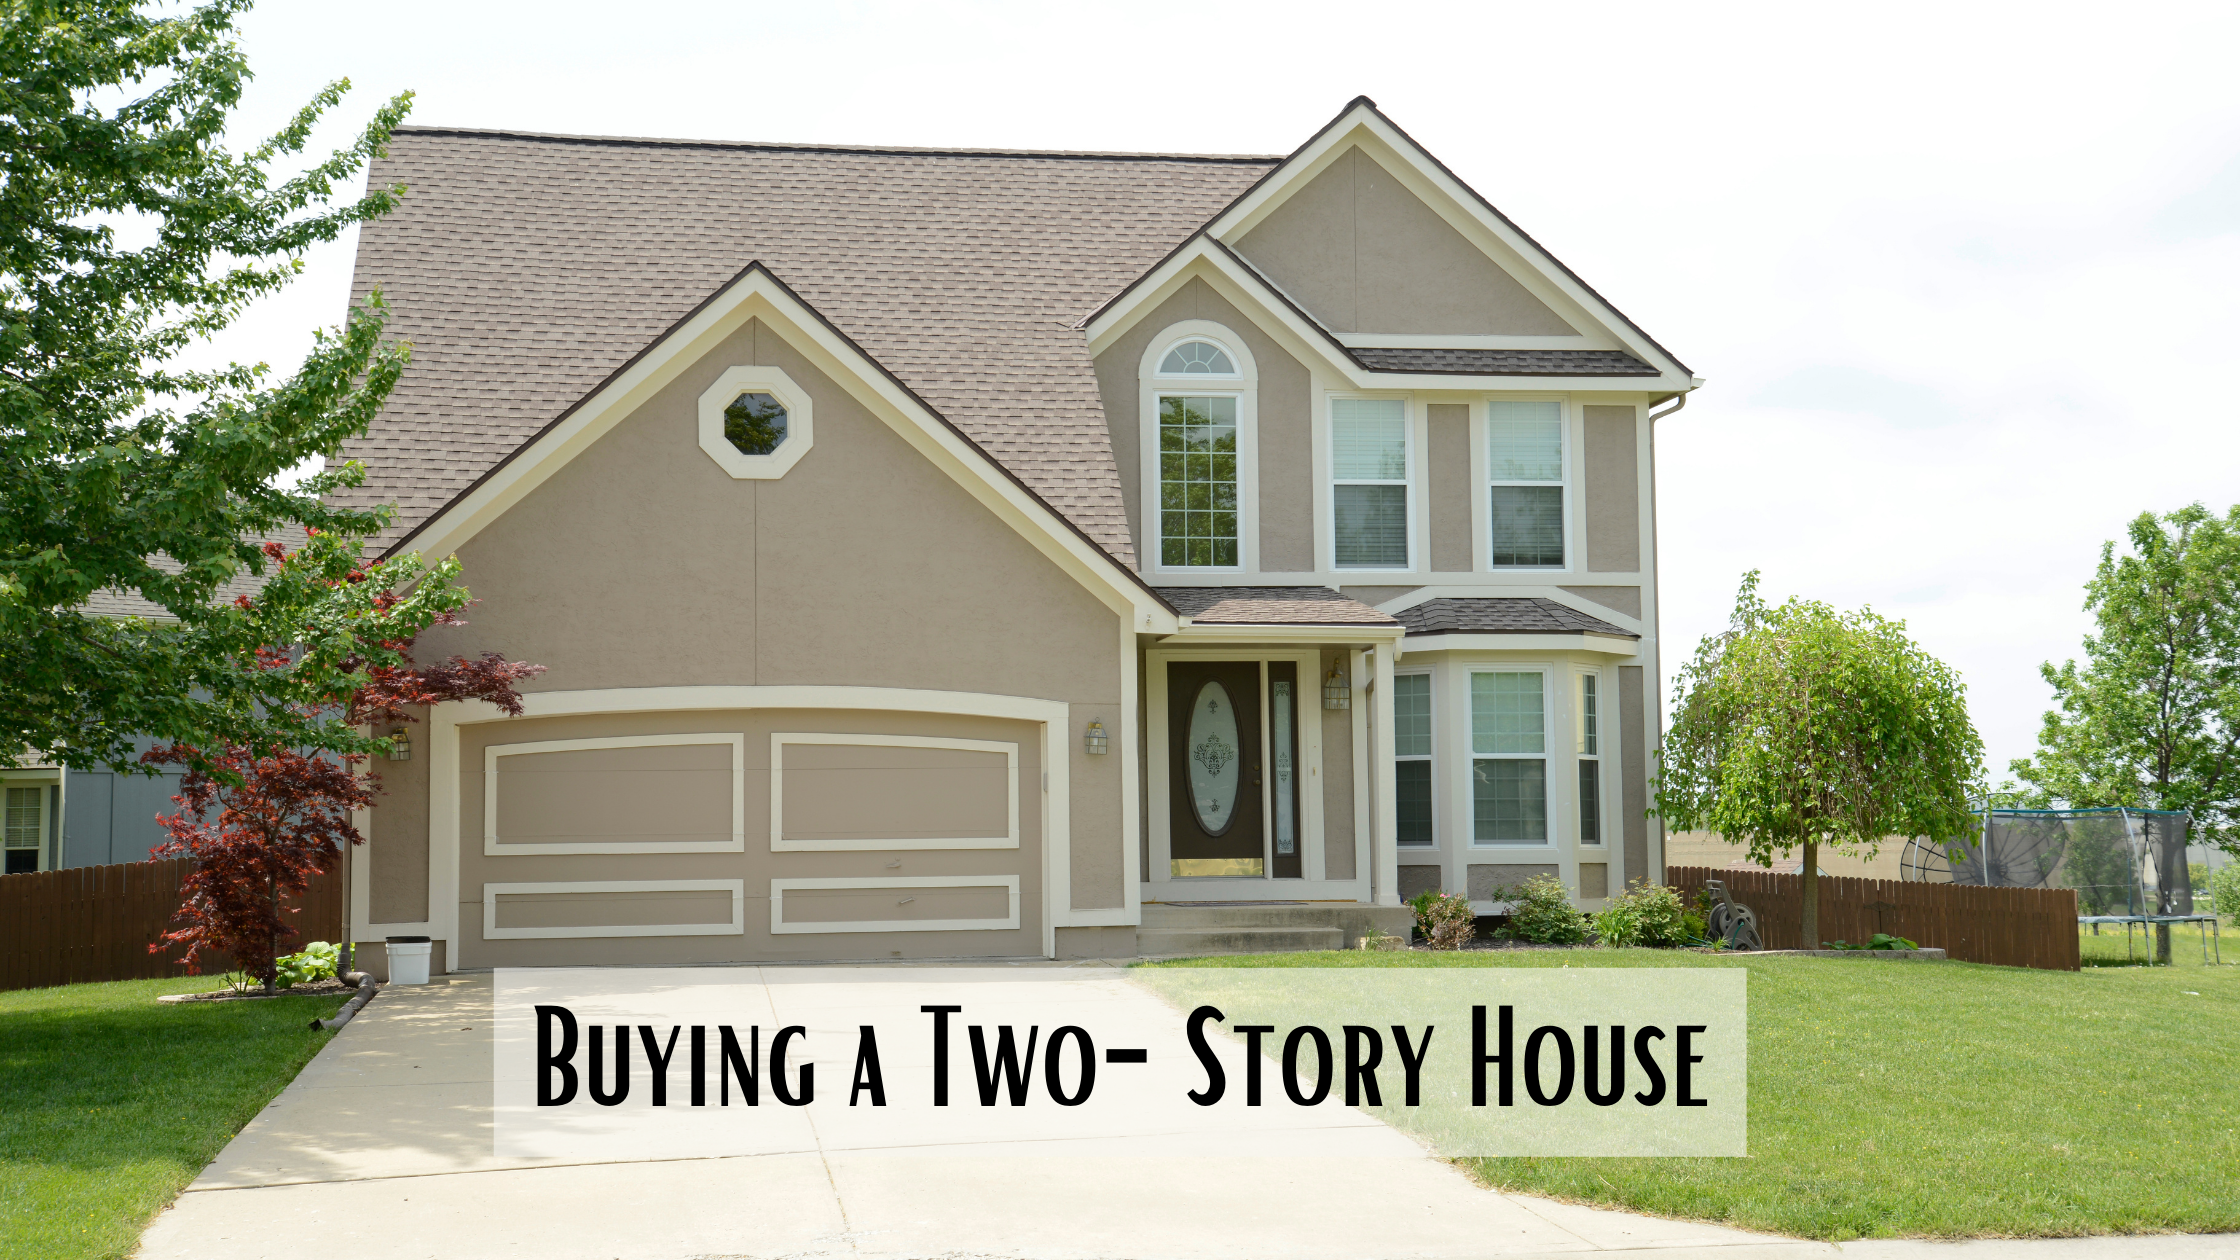 Should I Buy a Single-Story or a Two-Story Home? Part Two